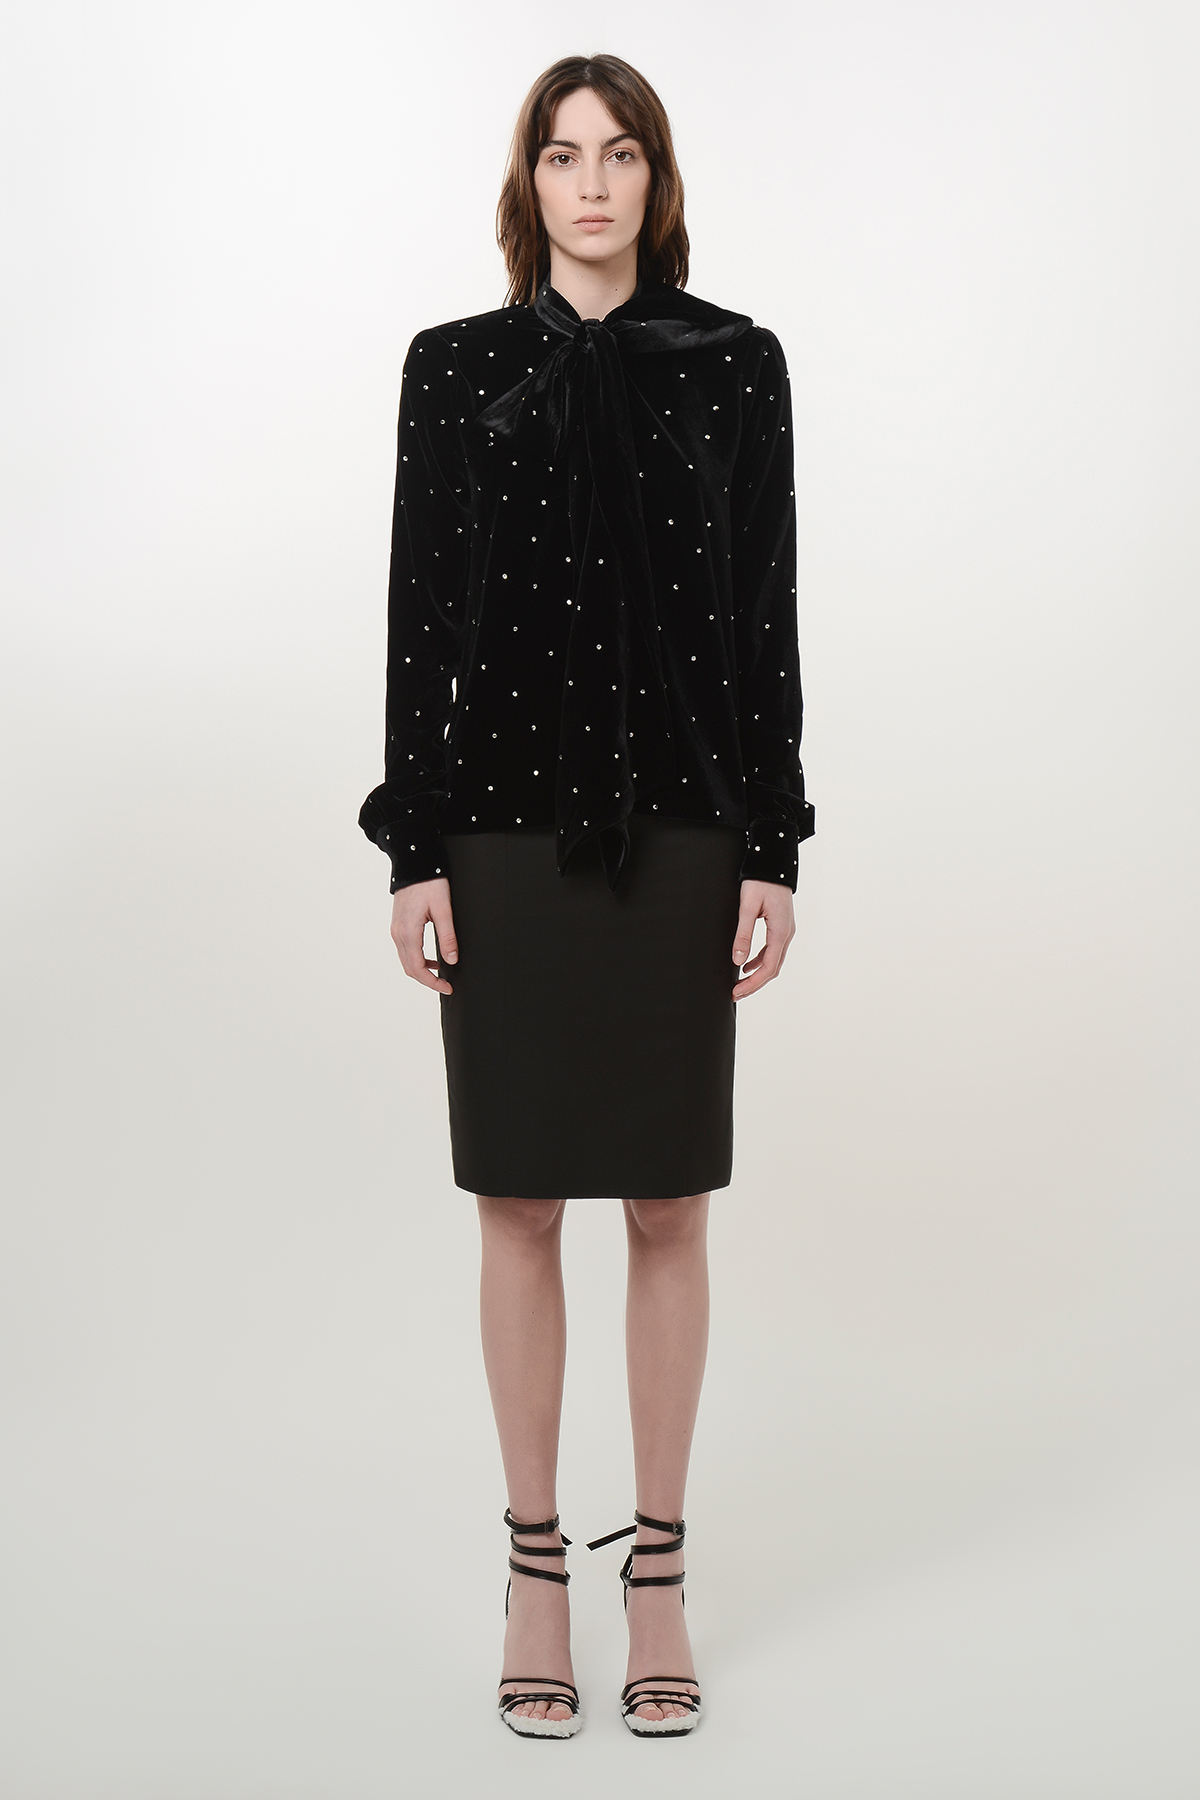 Bow tie velvet shirt with shoulder pads and crystal drops